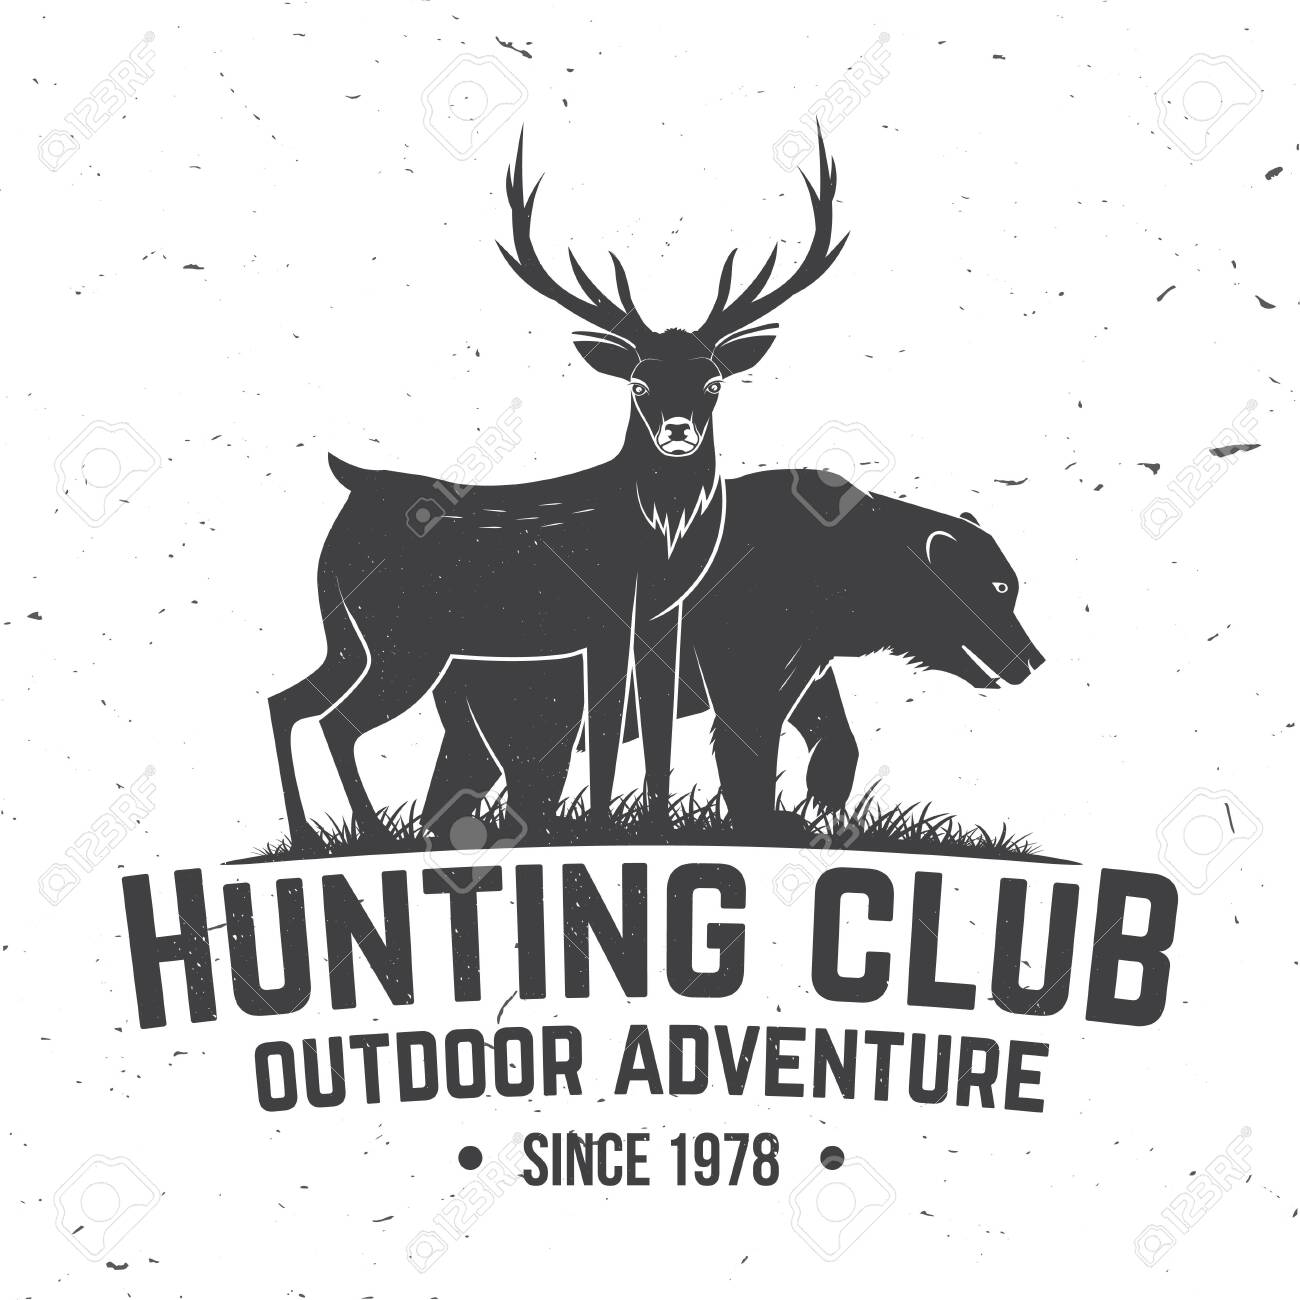 Hunting club badge. Vector illustration. Concept for shirt, label, print, stamp, badge, tee. Vintage typography design with deer, bear and forest silhouette. Outdoor adventure hunt club emblem - 135463399